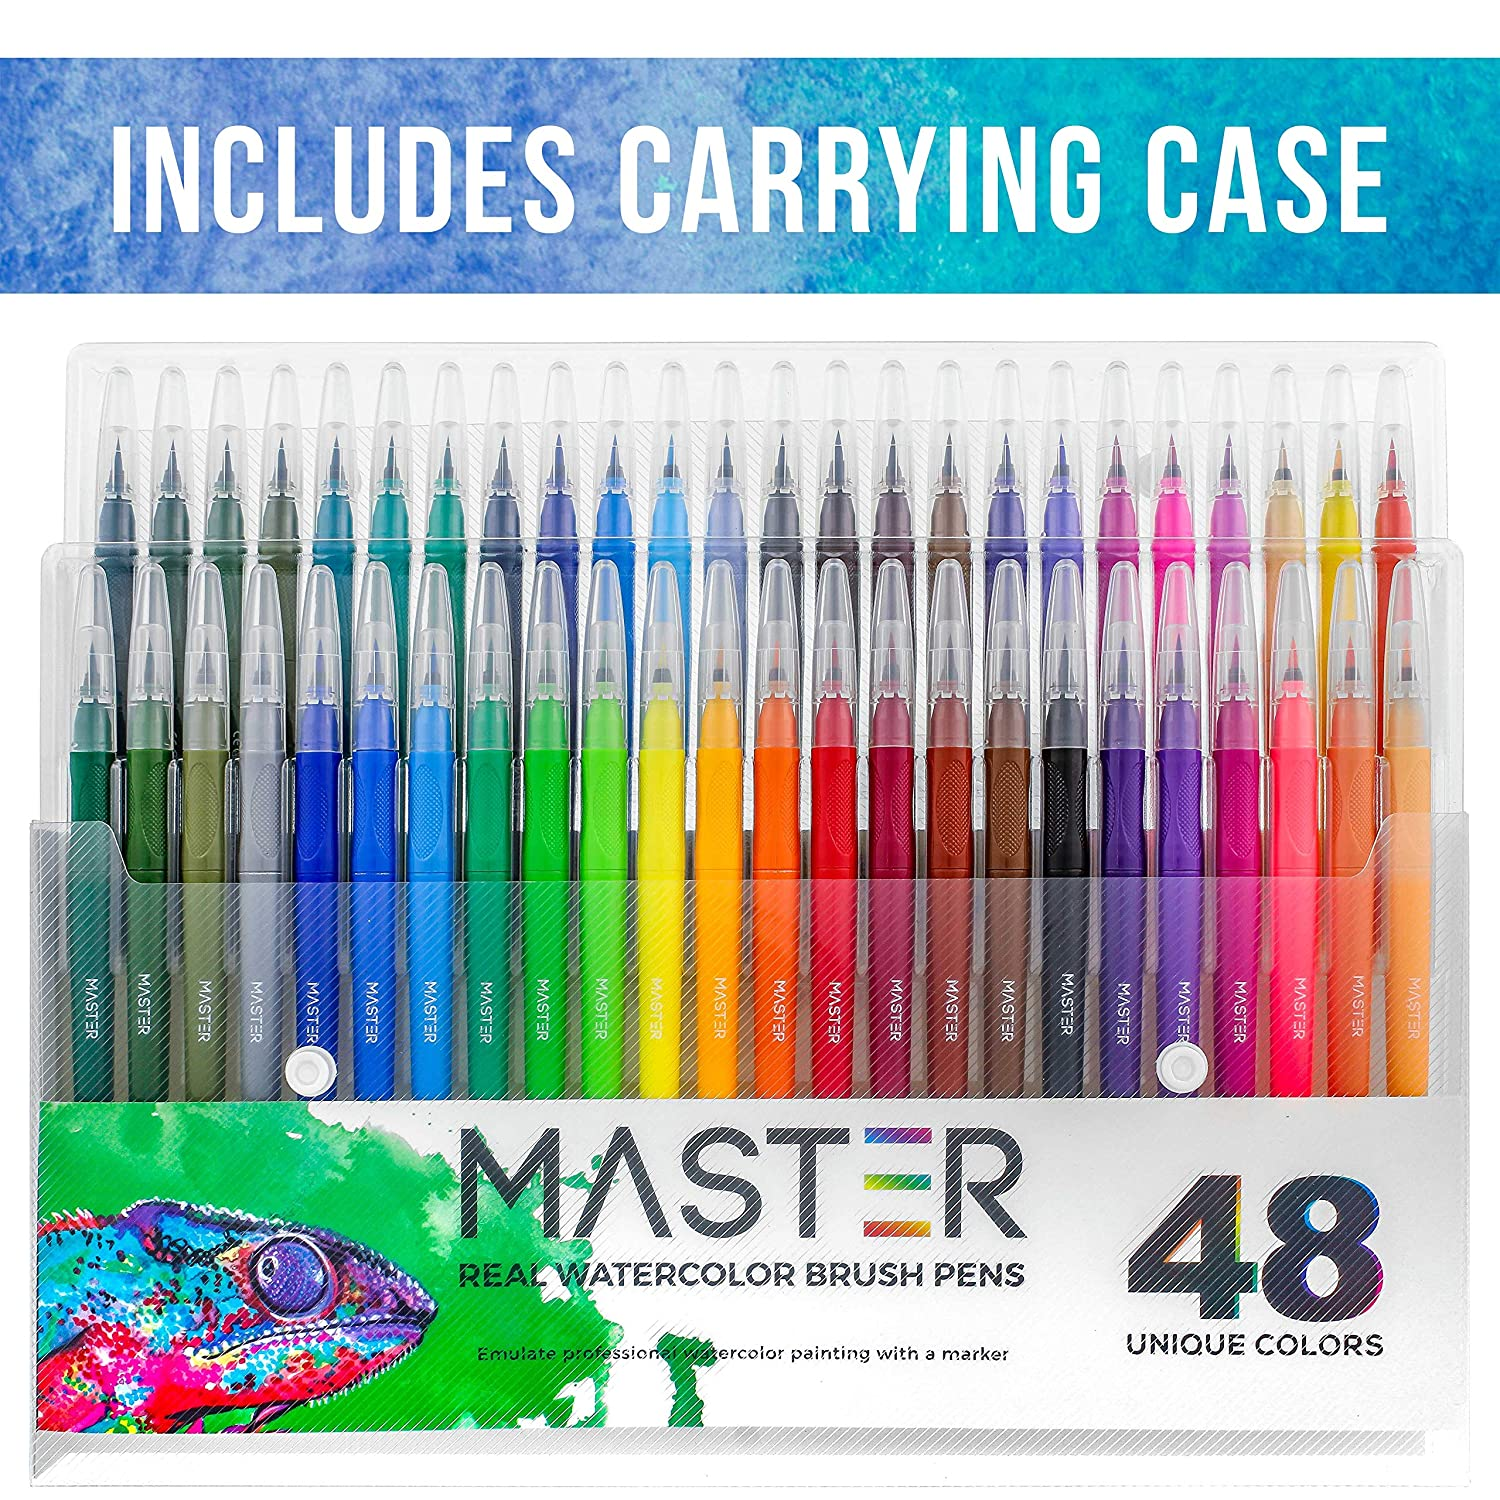 Calligraphy Adult Coloring Books 48 Color Master Markers Watercolor Soft Flexible Brush Tip Pens Set Drawing Writing Sketching Manga Art Fine /& Broad Lines Comic Vibrant Colors